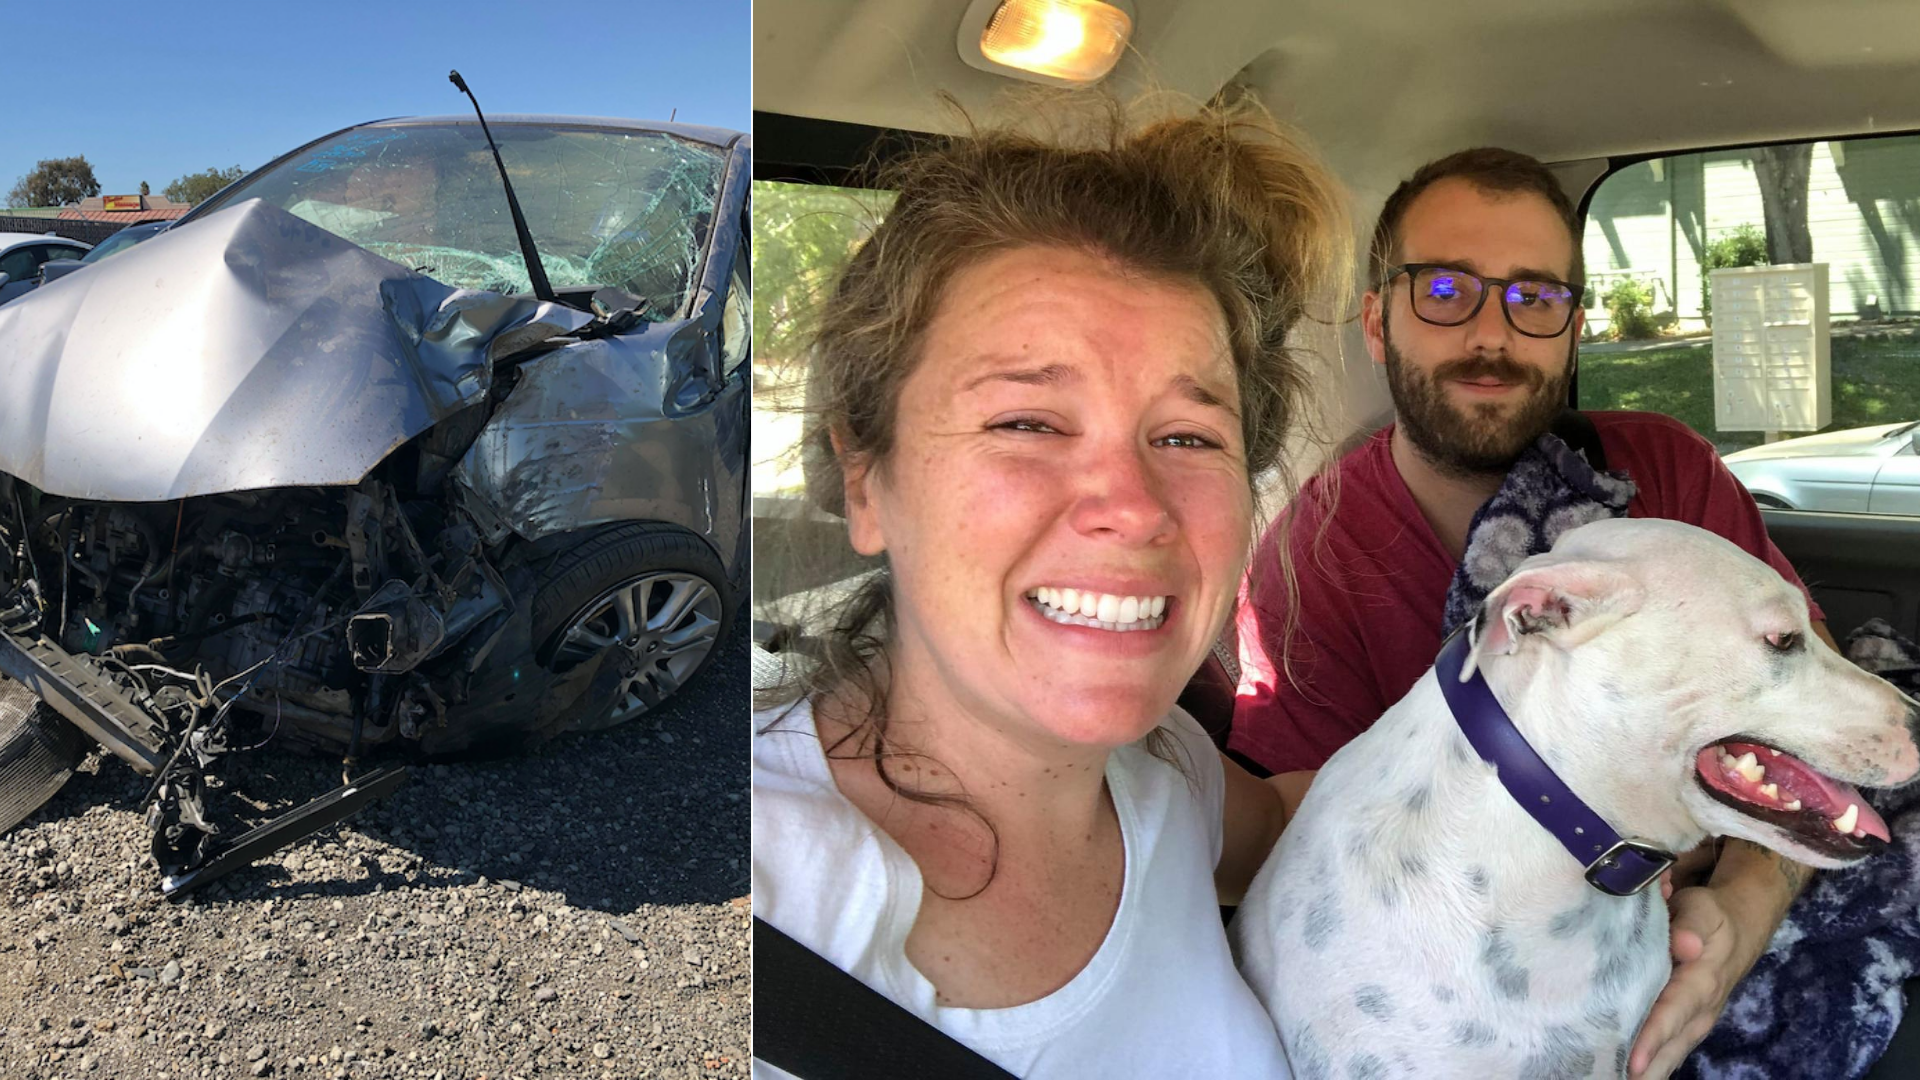 This combination photo shows Stefanie and Duane Lindsay's damaged car after a crash in Northern California on Aug. 1, 2020, and the couple posing with their dog after it was ejected from the vehicle. (Stefanie Grows via CNN)